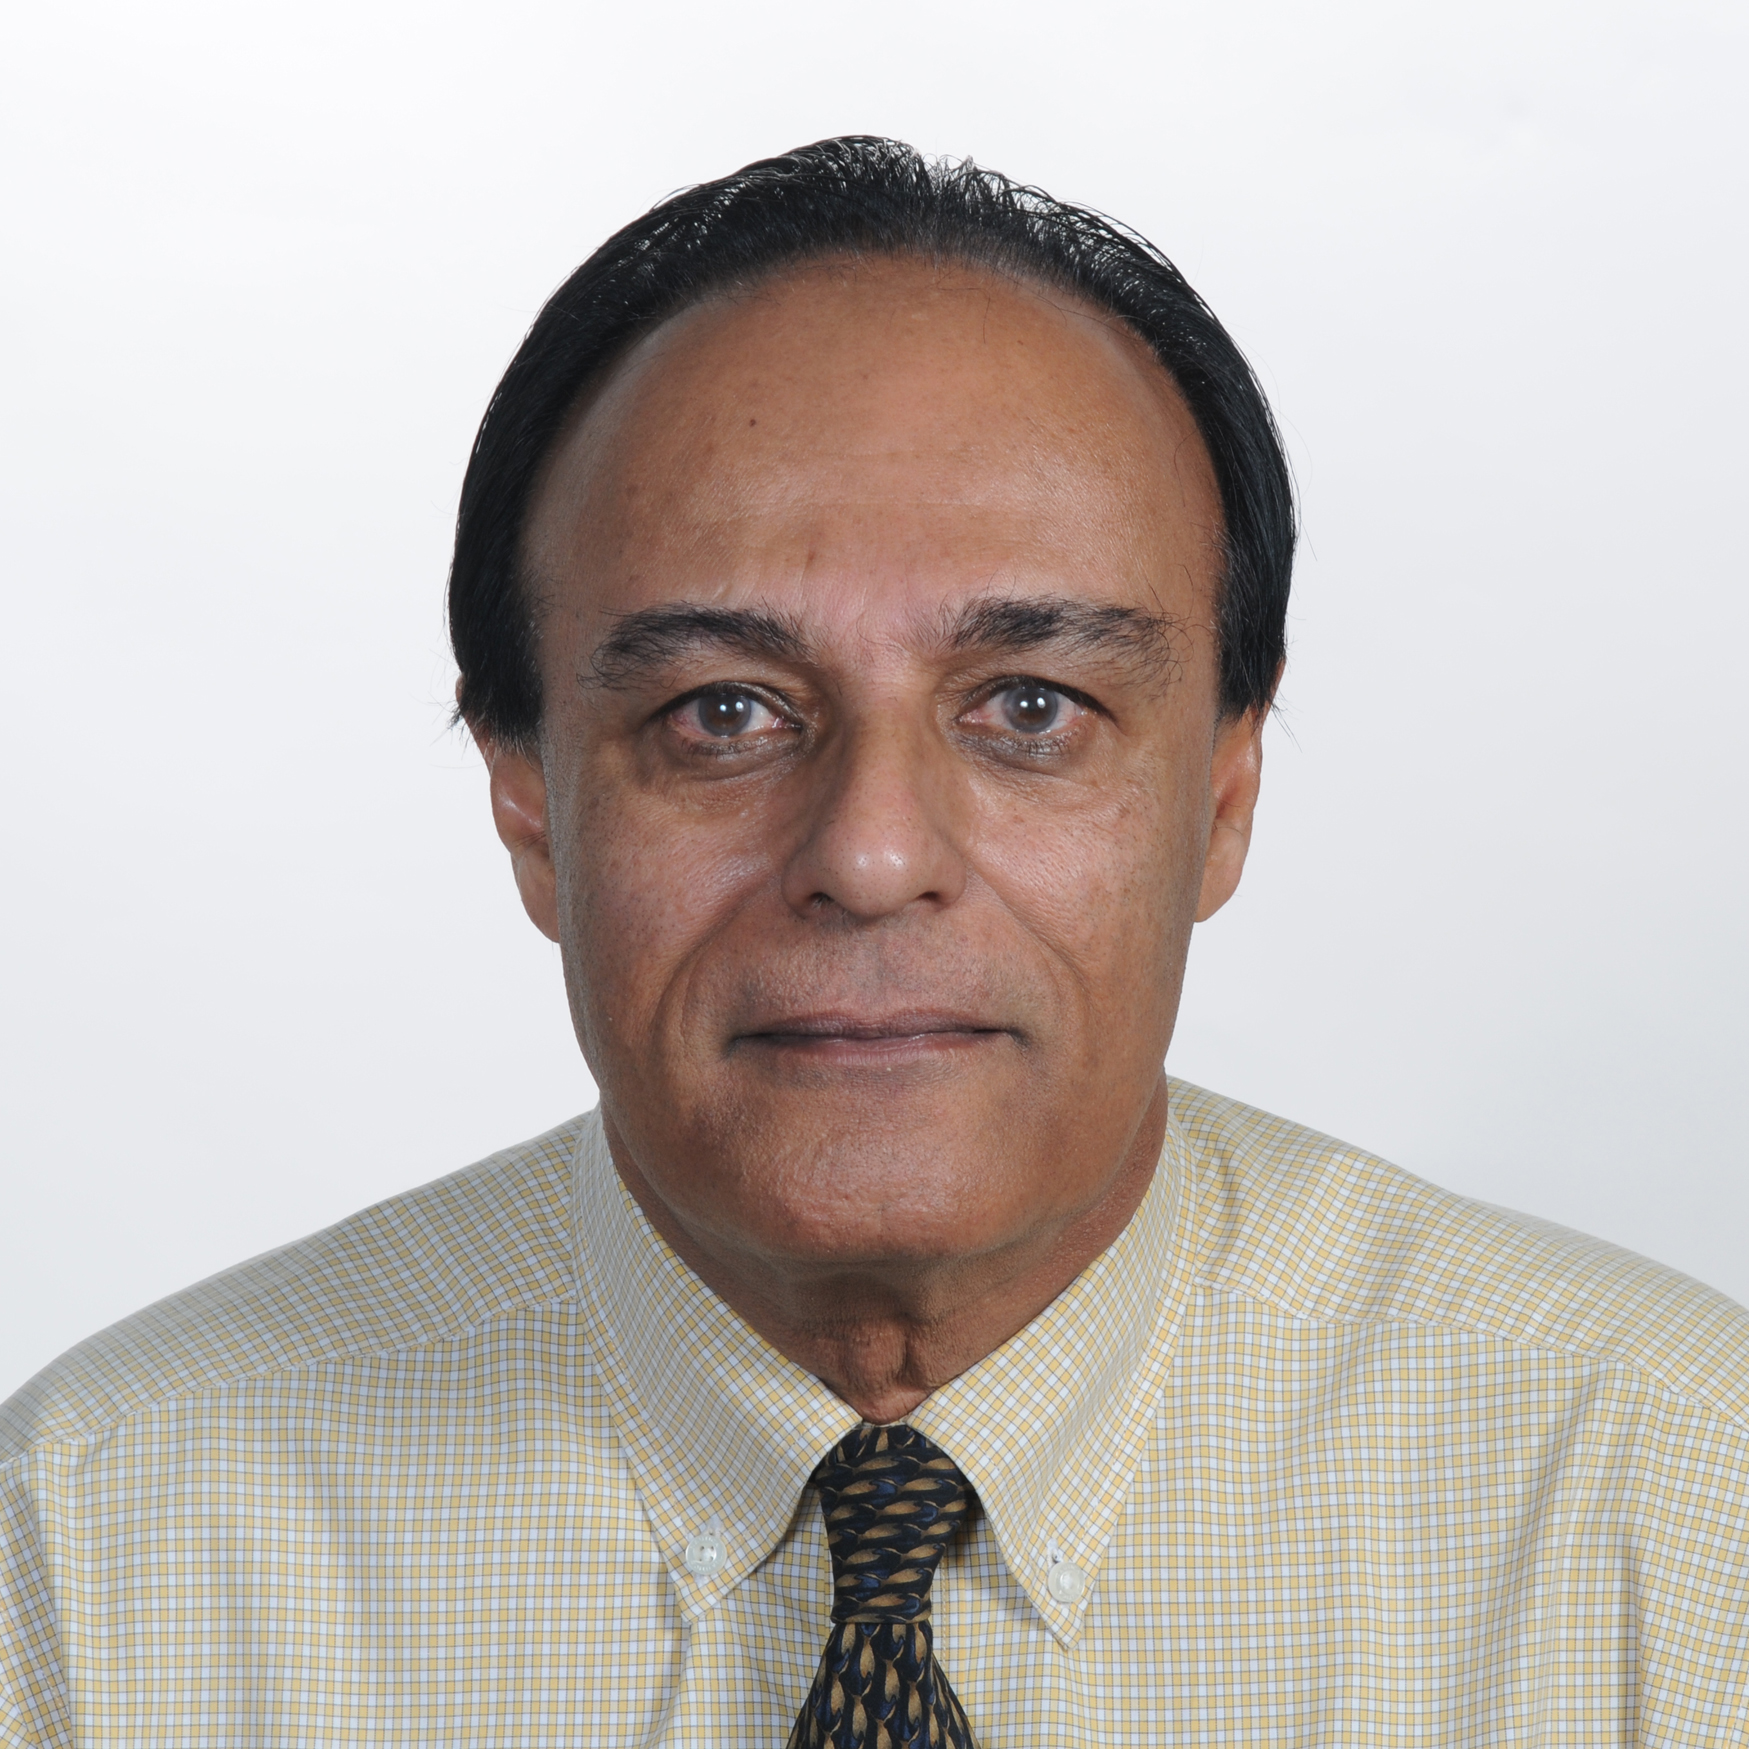 US Passport Head Size Template